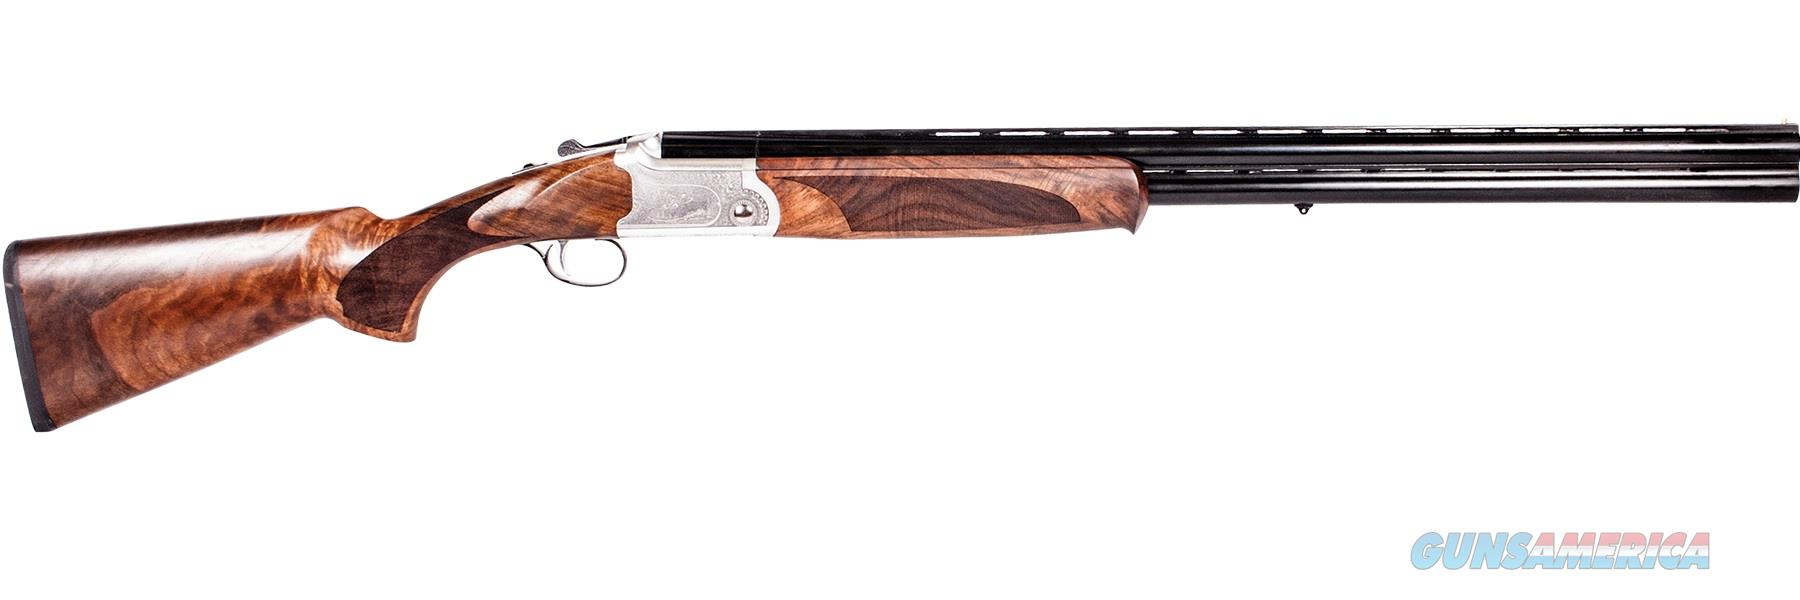 "ATI Cavalry SV 12 Gauge Engraved Receiver 28"" Walnut Stock ATIGKOF12SV   Guns > Shotguns > American Tactical Import"